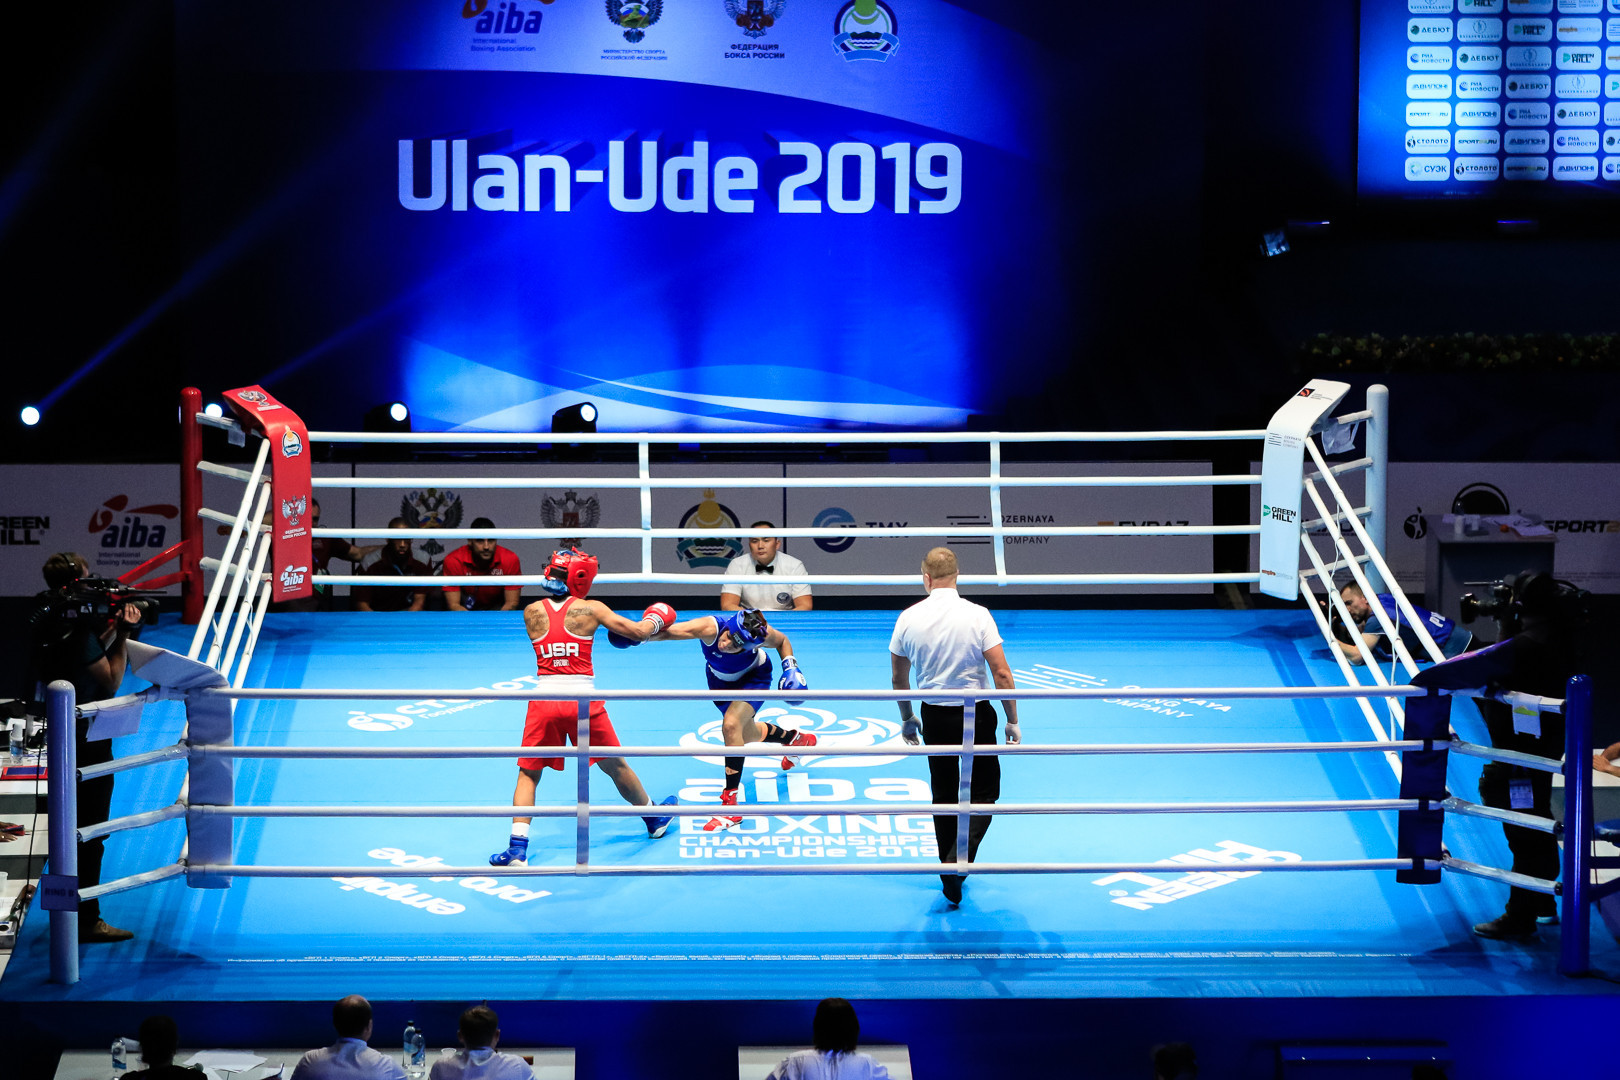 The semi-finalists were decided at the AIBA Women's World Championships ©AIBA